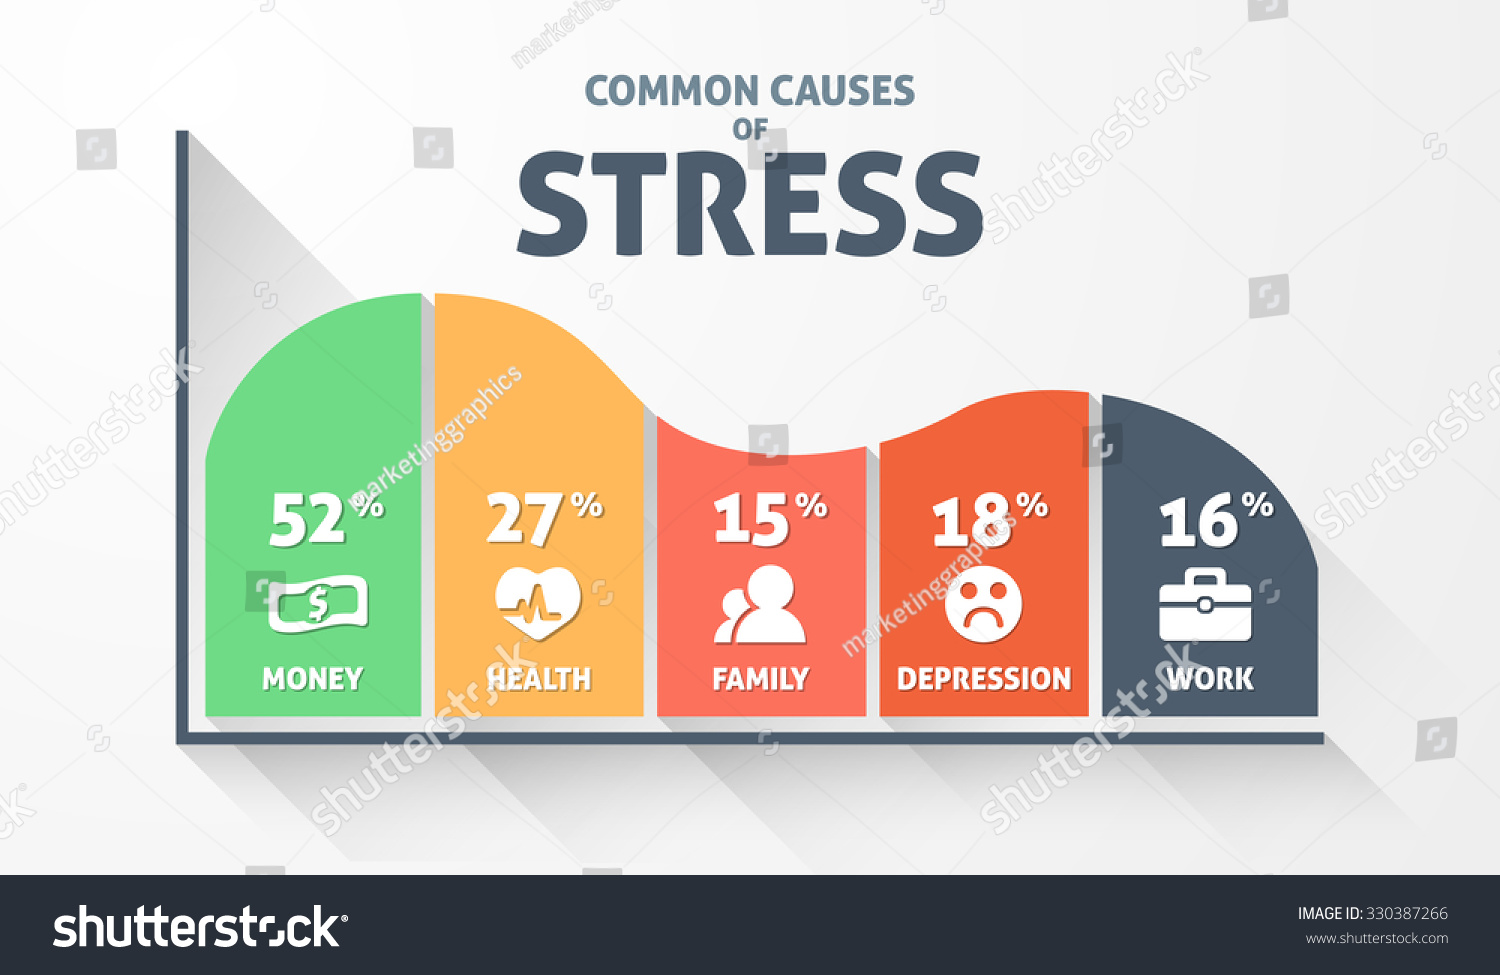 causes stress infographic stock vector 330387266 shutterstock. Black Bedroom Furniture Sets. Home Design Ideas